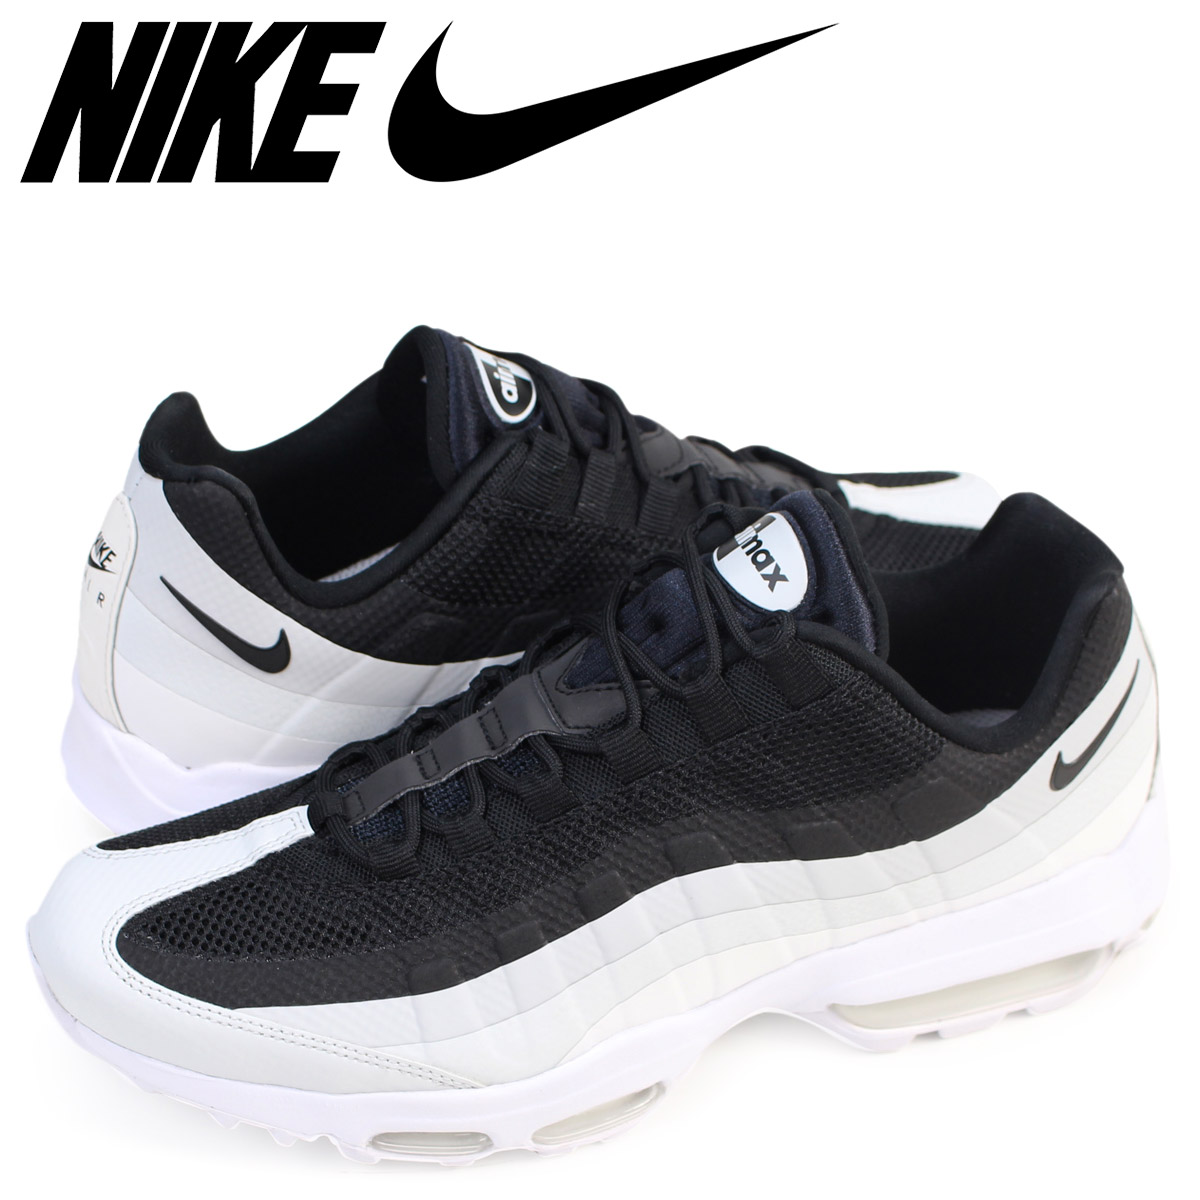 2c10cf5dec Sugar Online Shop: Nike NIKE Air Max 95 sneakers AIR MAX 95 ULTRA ESSENTIAL  men ultra essential 857,910-009 shoes black [6/8 Shinnyu load] | Rakuten  Global ...